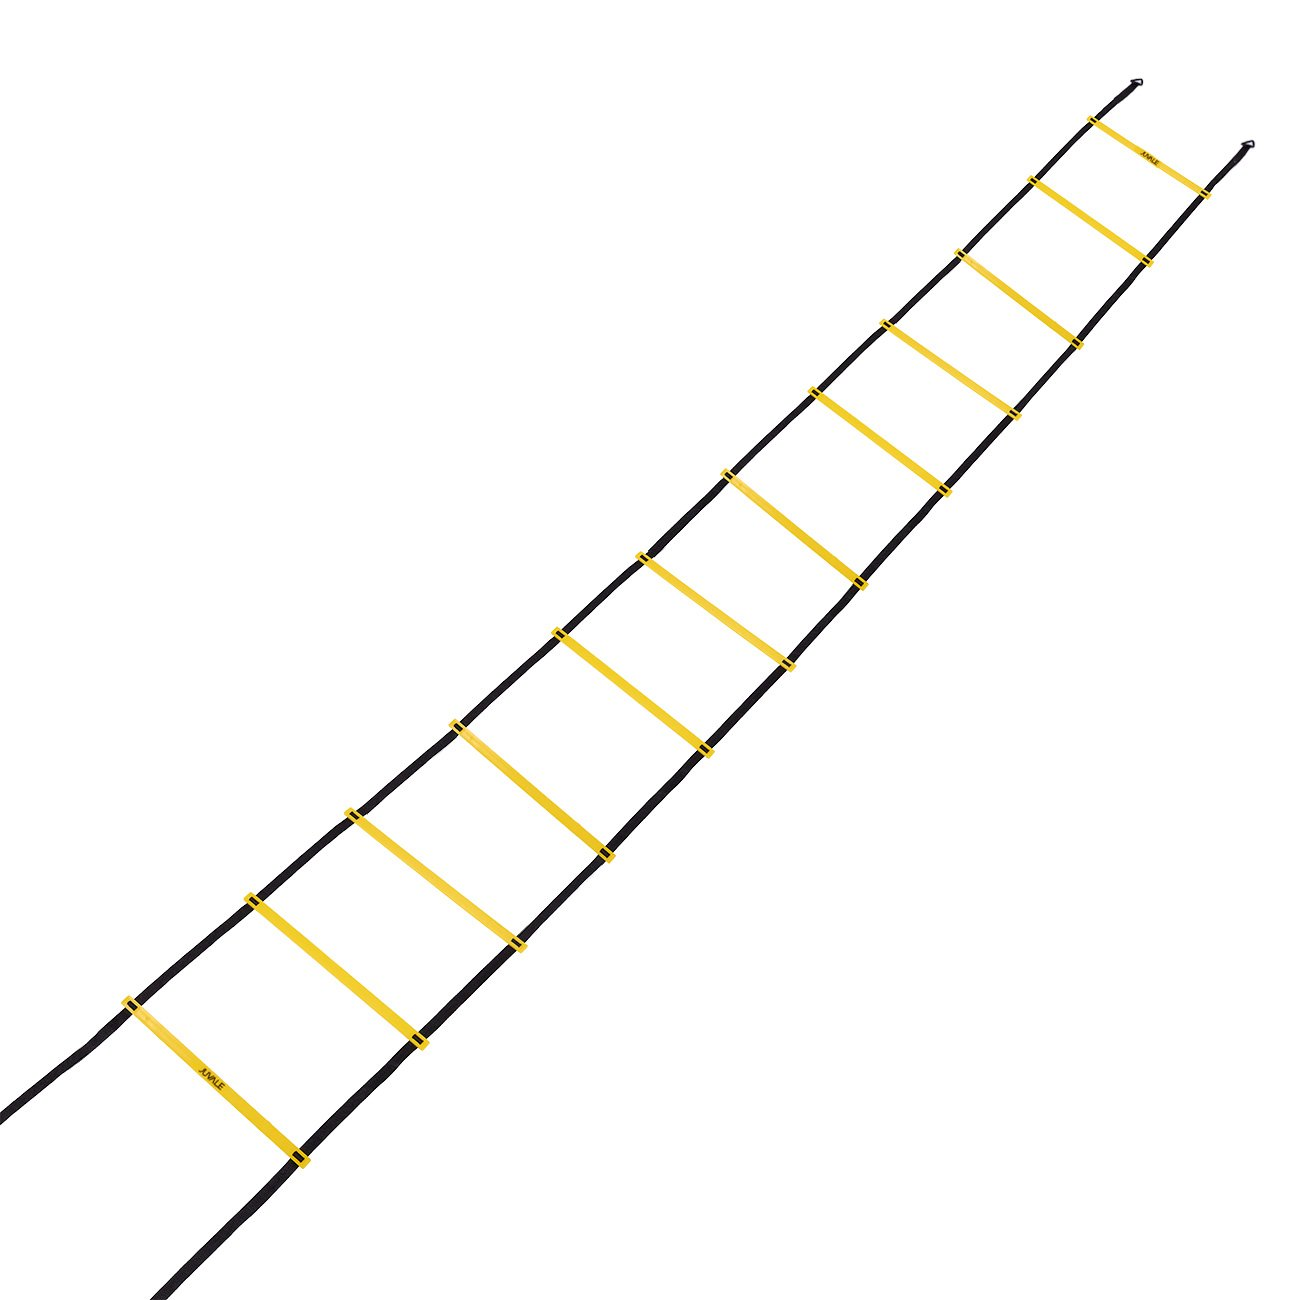 Speed and Agility Training Set - Includes Agility Ladder, 6 Disc Cones, Resistance Parachute, 4 Steel Stakes and a Drawstring Bag - For Speed, Coordination, Footwork, Explosiveness, Black, Yellow by Juvale (Image #2)